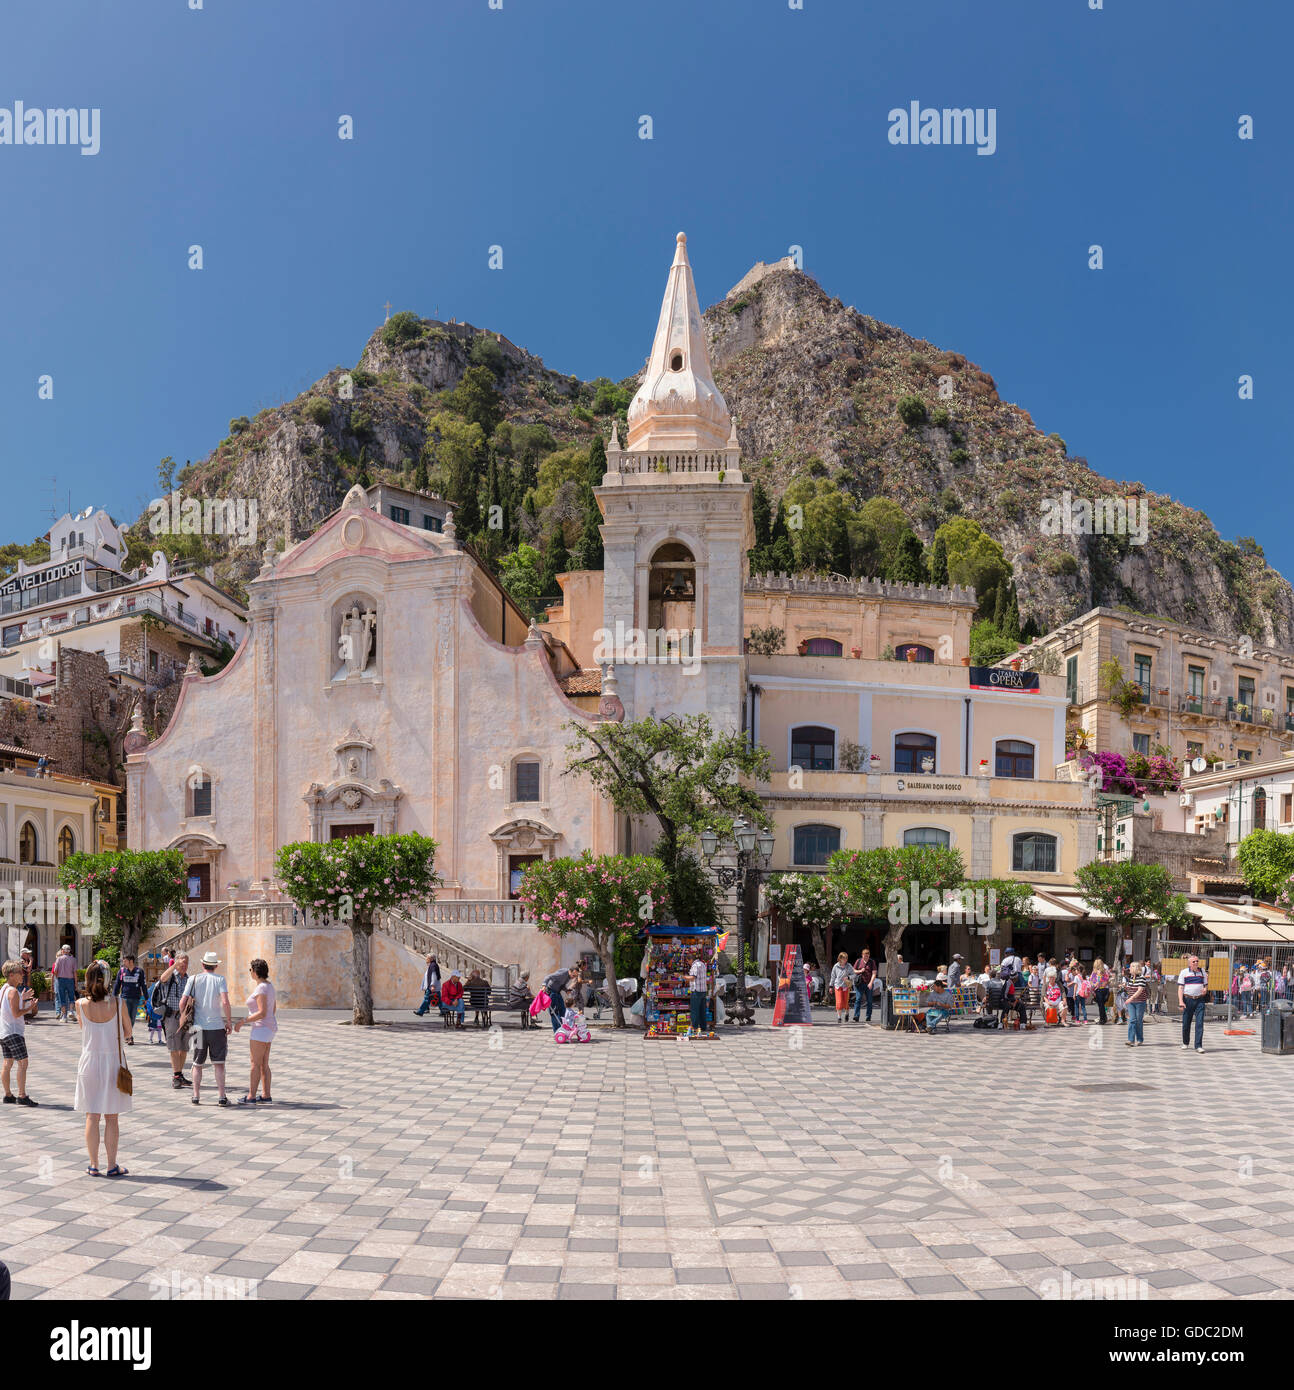 Central square,Chiesa di San Giuseppe,Castello,church, - Stock Image